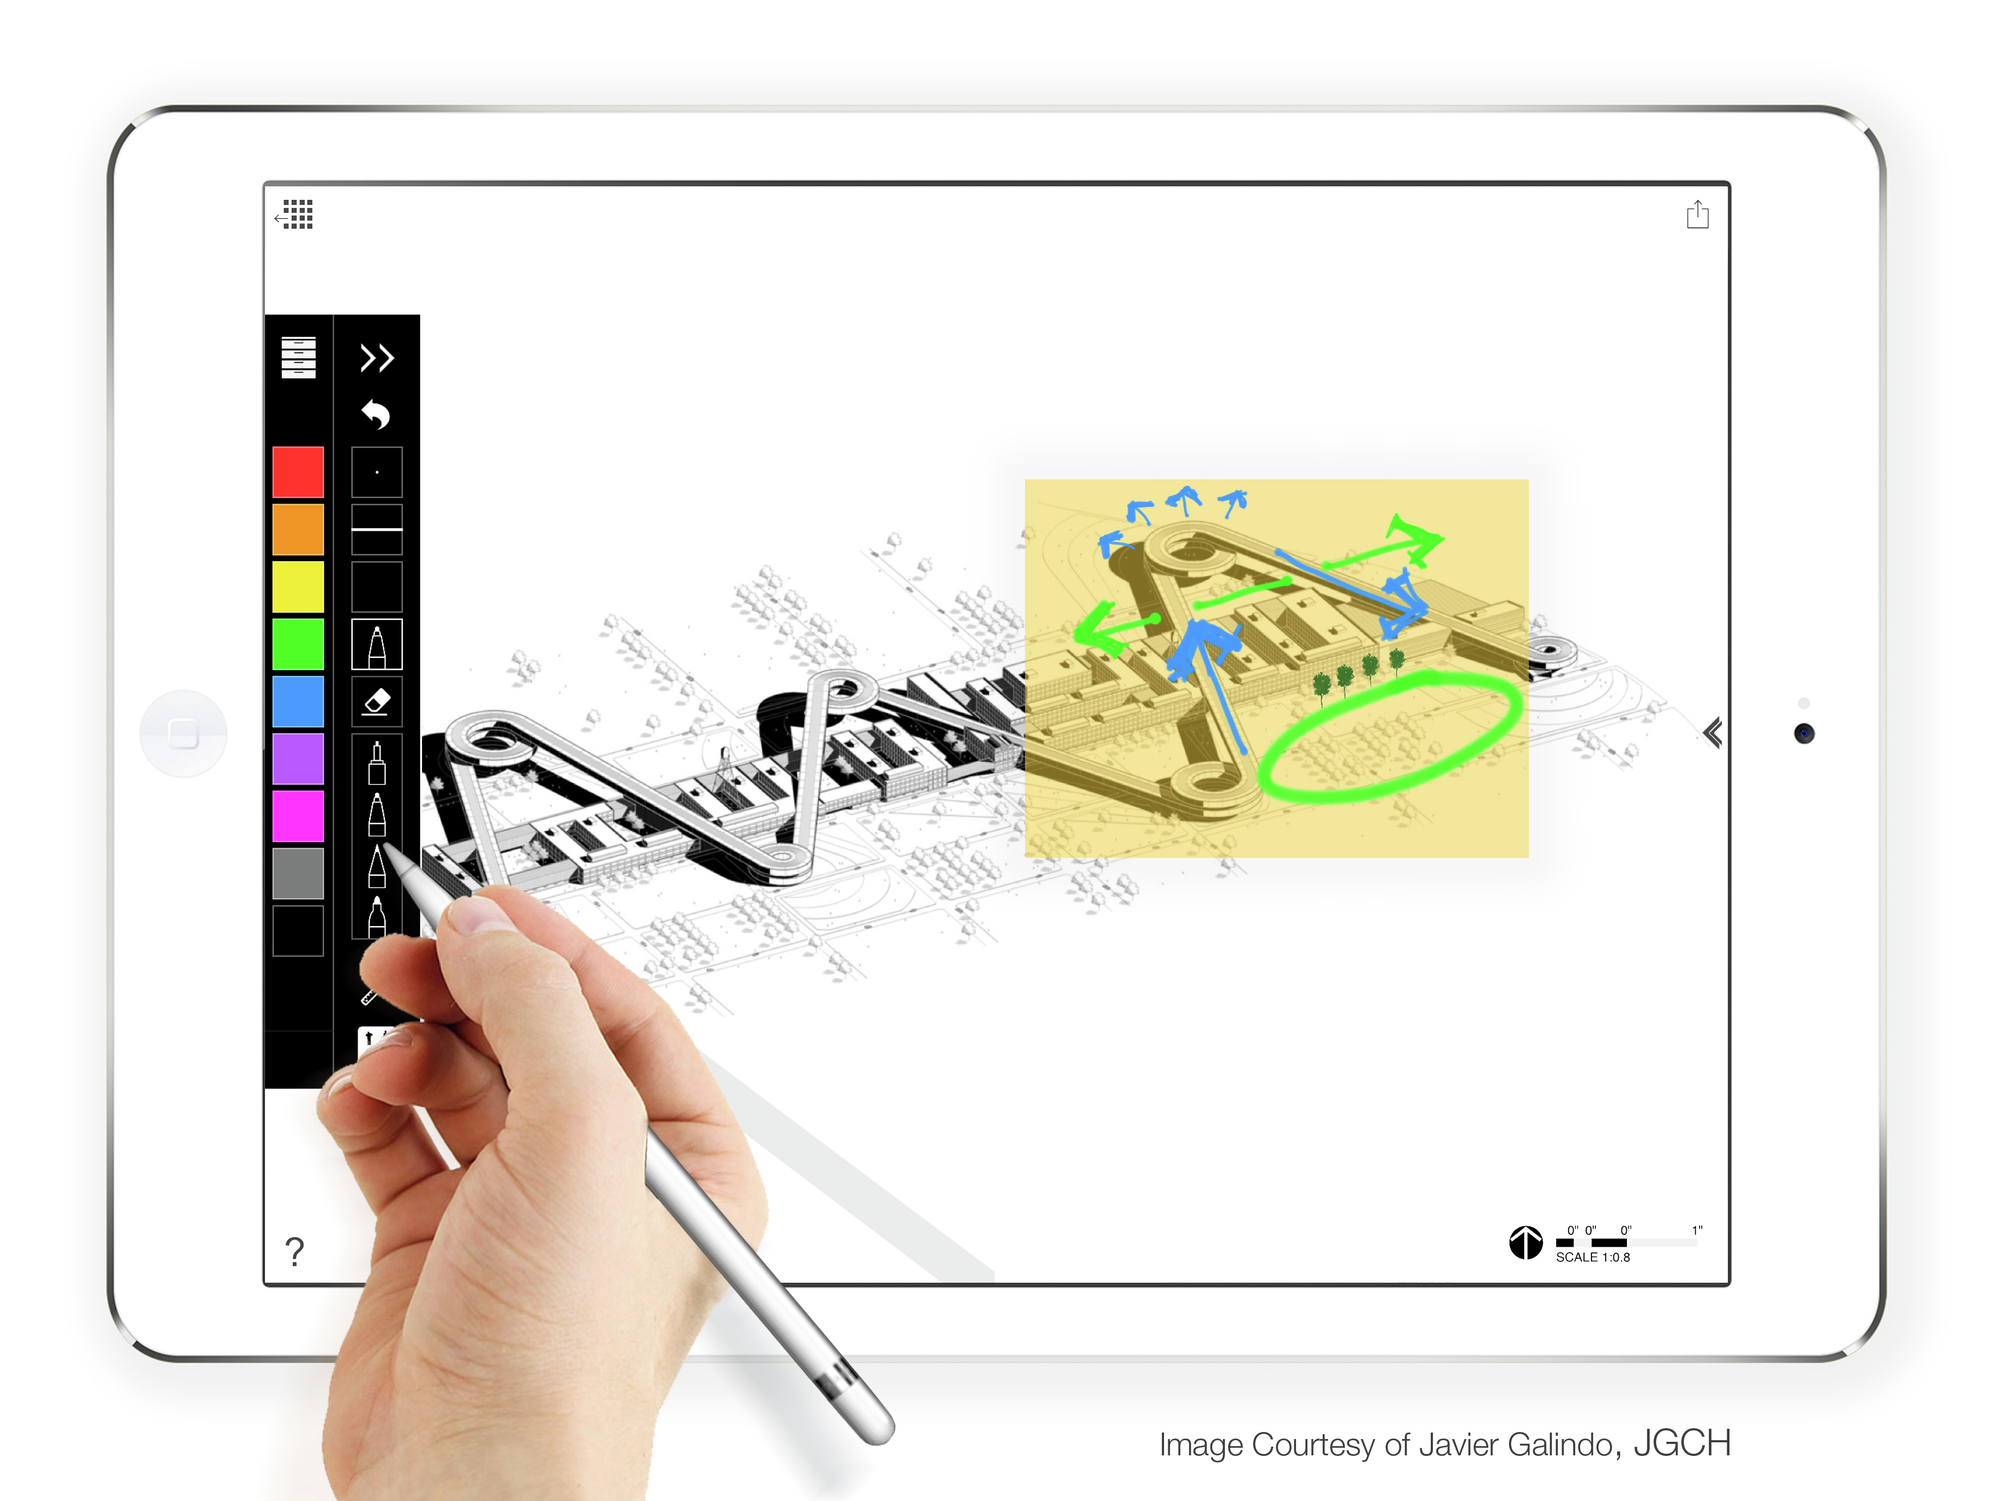 architectural drawing app AD App Guide: Morpholio Releases TracePro for iPad Pro | ArchDaily